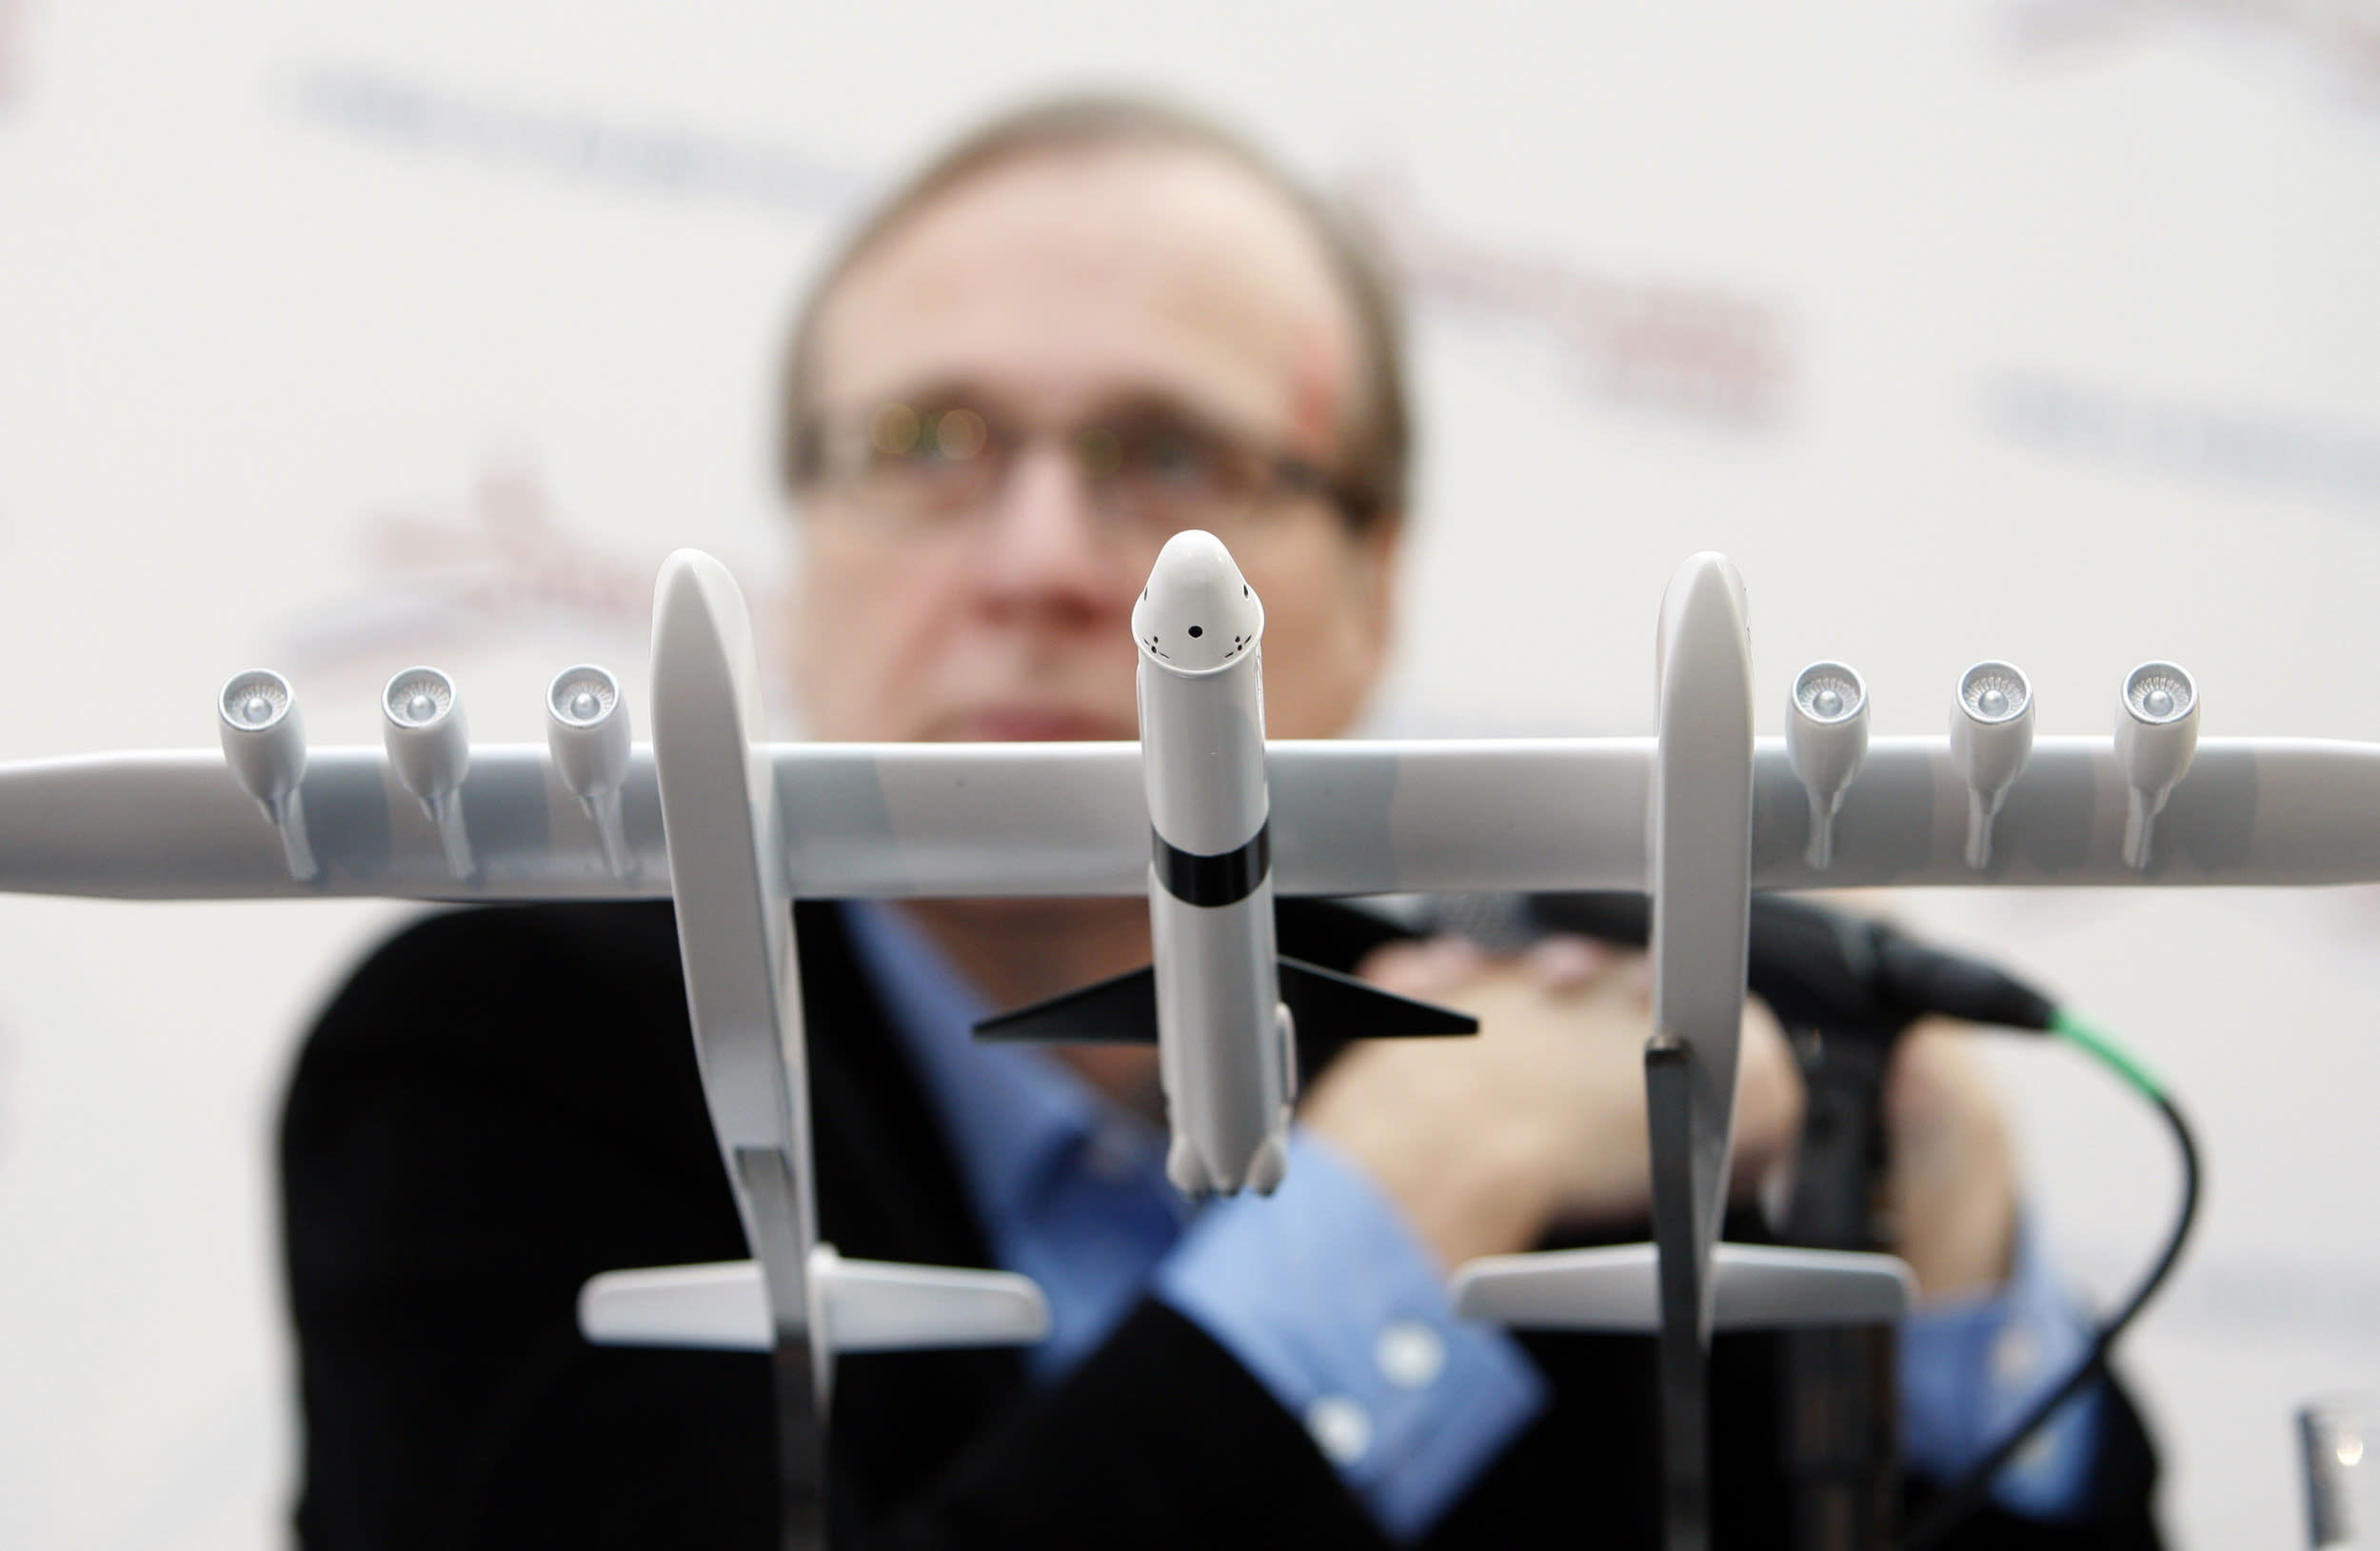 Paul Allen, co-founder of Microsoft Corp., sits behind a model aircraft during a news conference for the launch of his new venture Stratolaunch Systems Inc. in Seattle, Washington, U.S., on Tuesday, Dec. 13, 2011. Allen said Stratolaunch Systems Inc. will bring 'airport-like operations' to space flights, including eventual human missions. The first flight is planned within five years. Photographer: Kevin P. Casey/Bloomberg via Getty Images